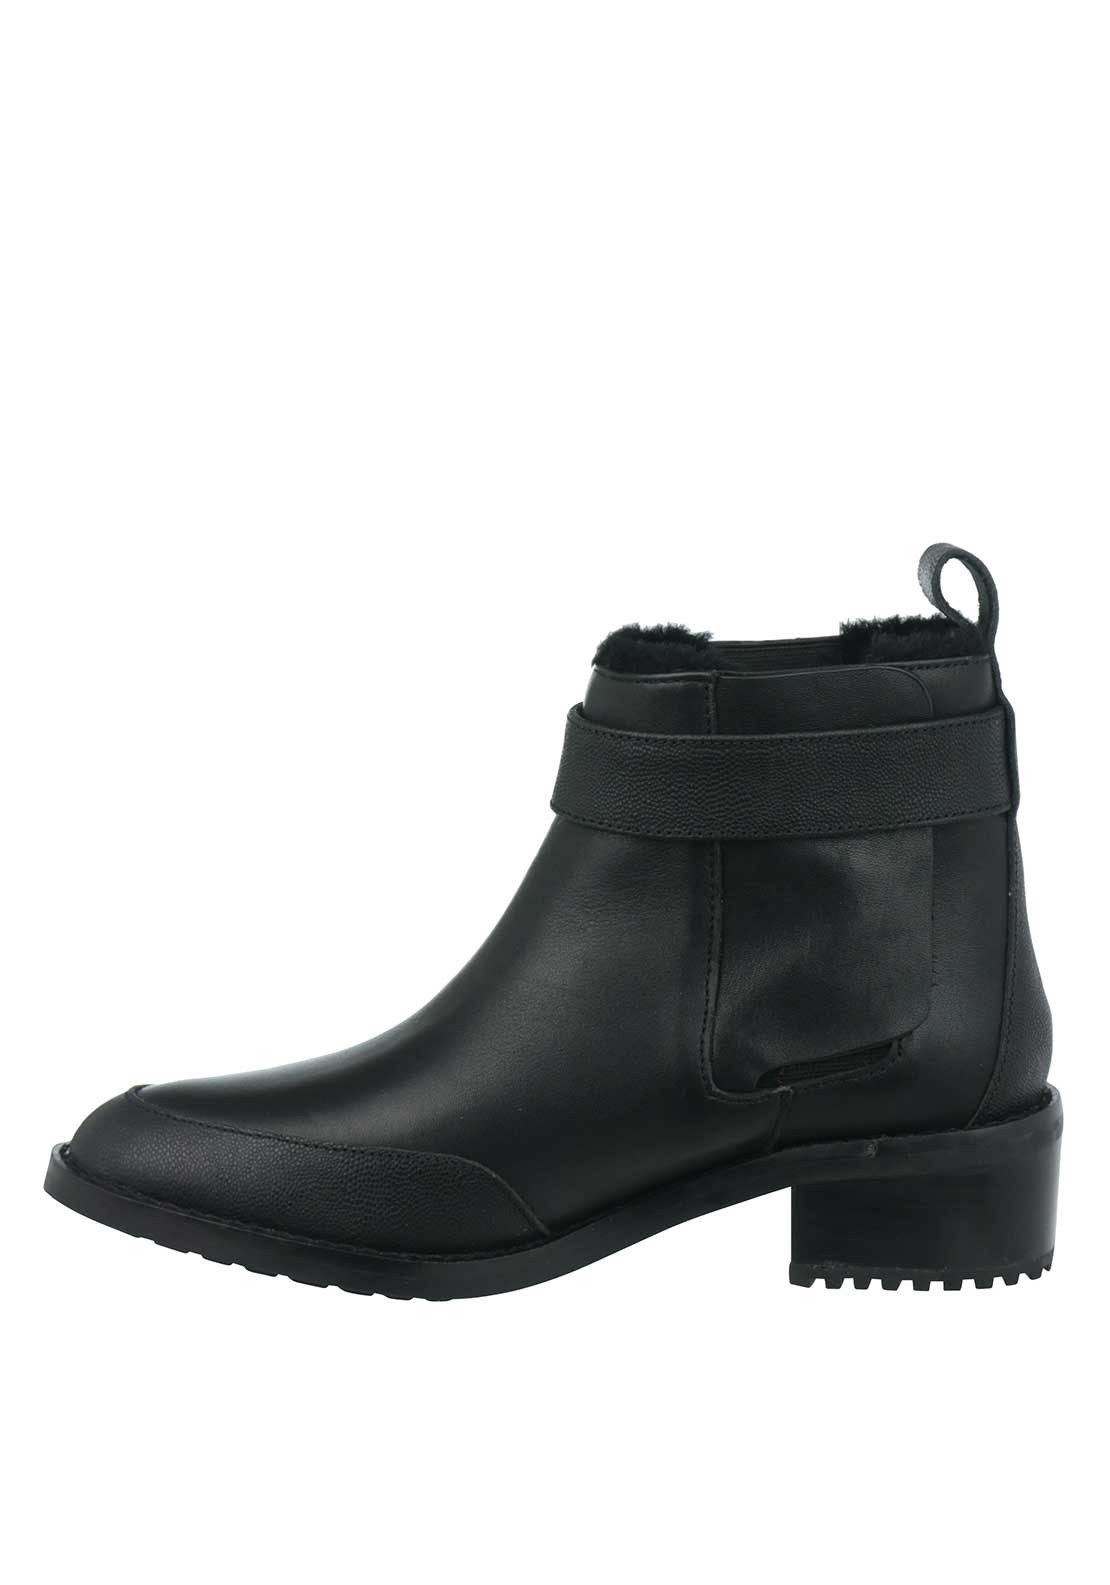 emu australia medlow leather ankle boots black